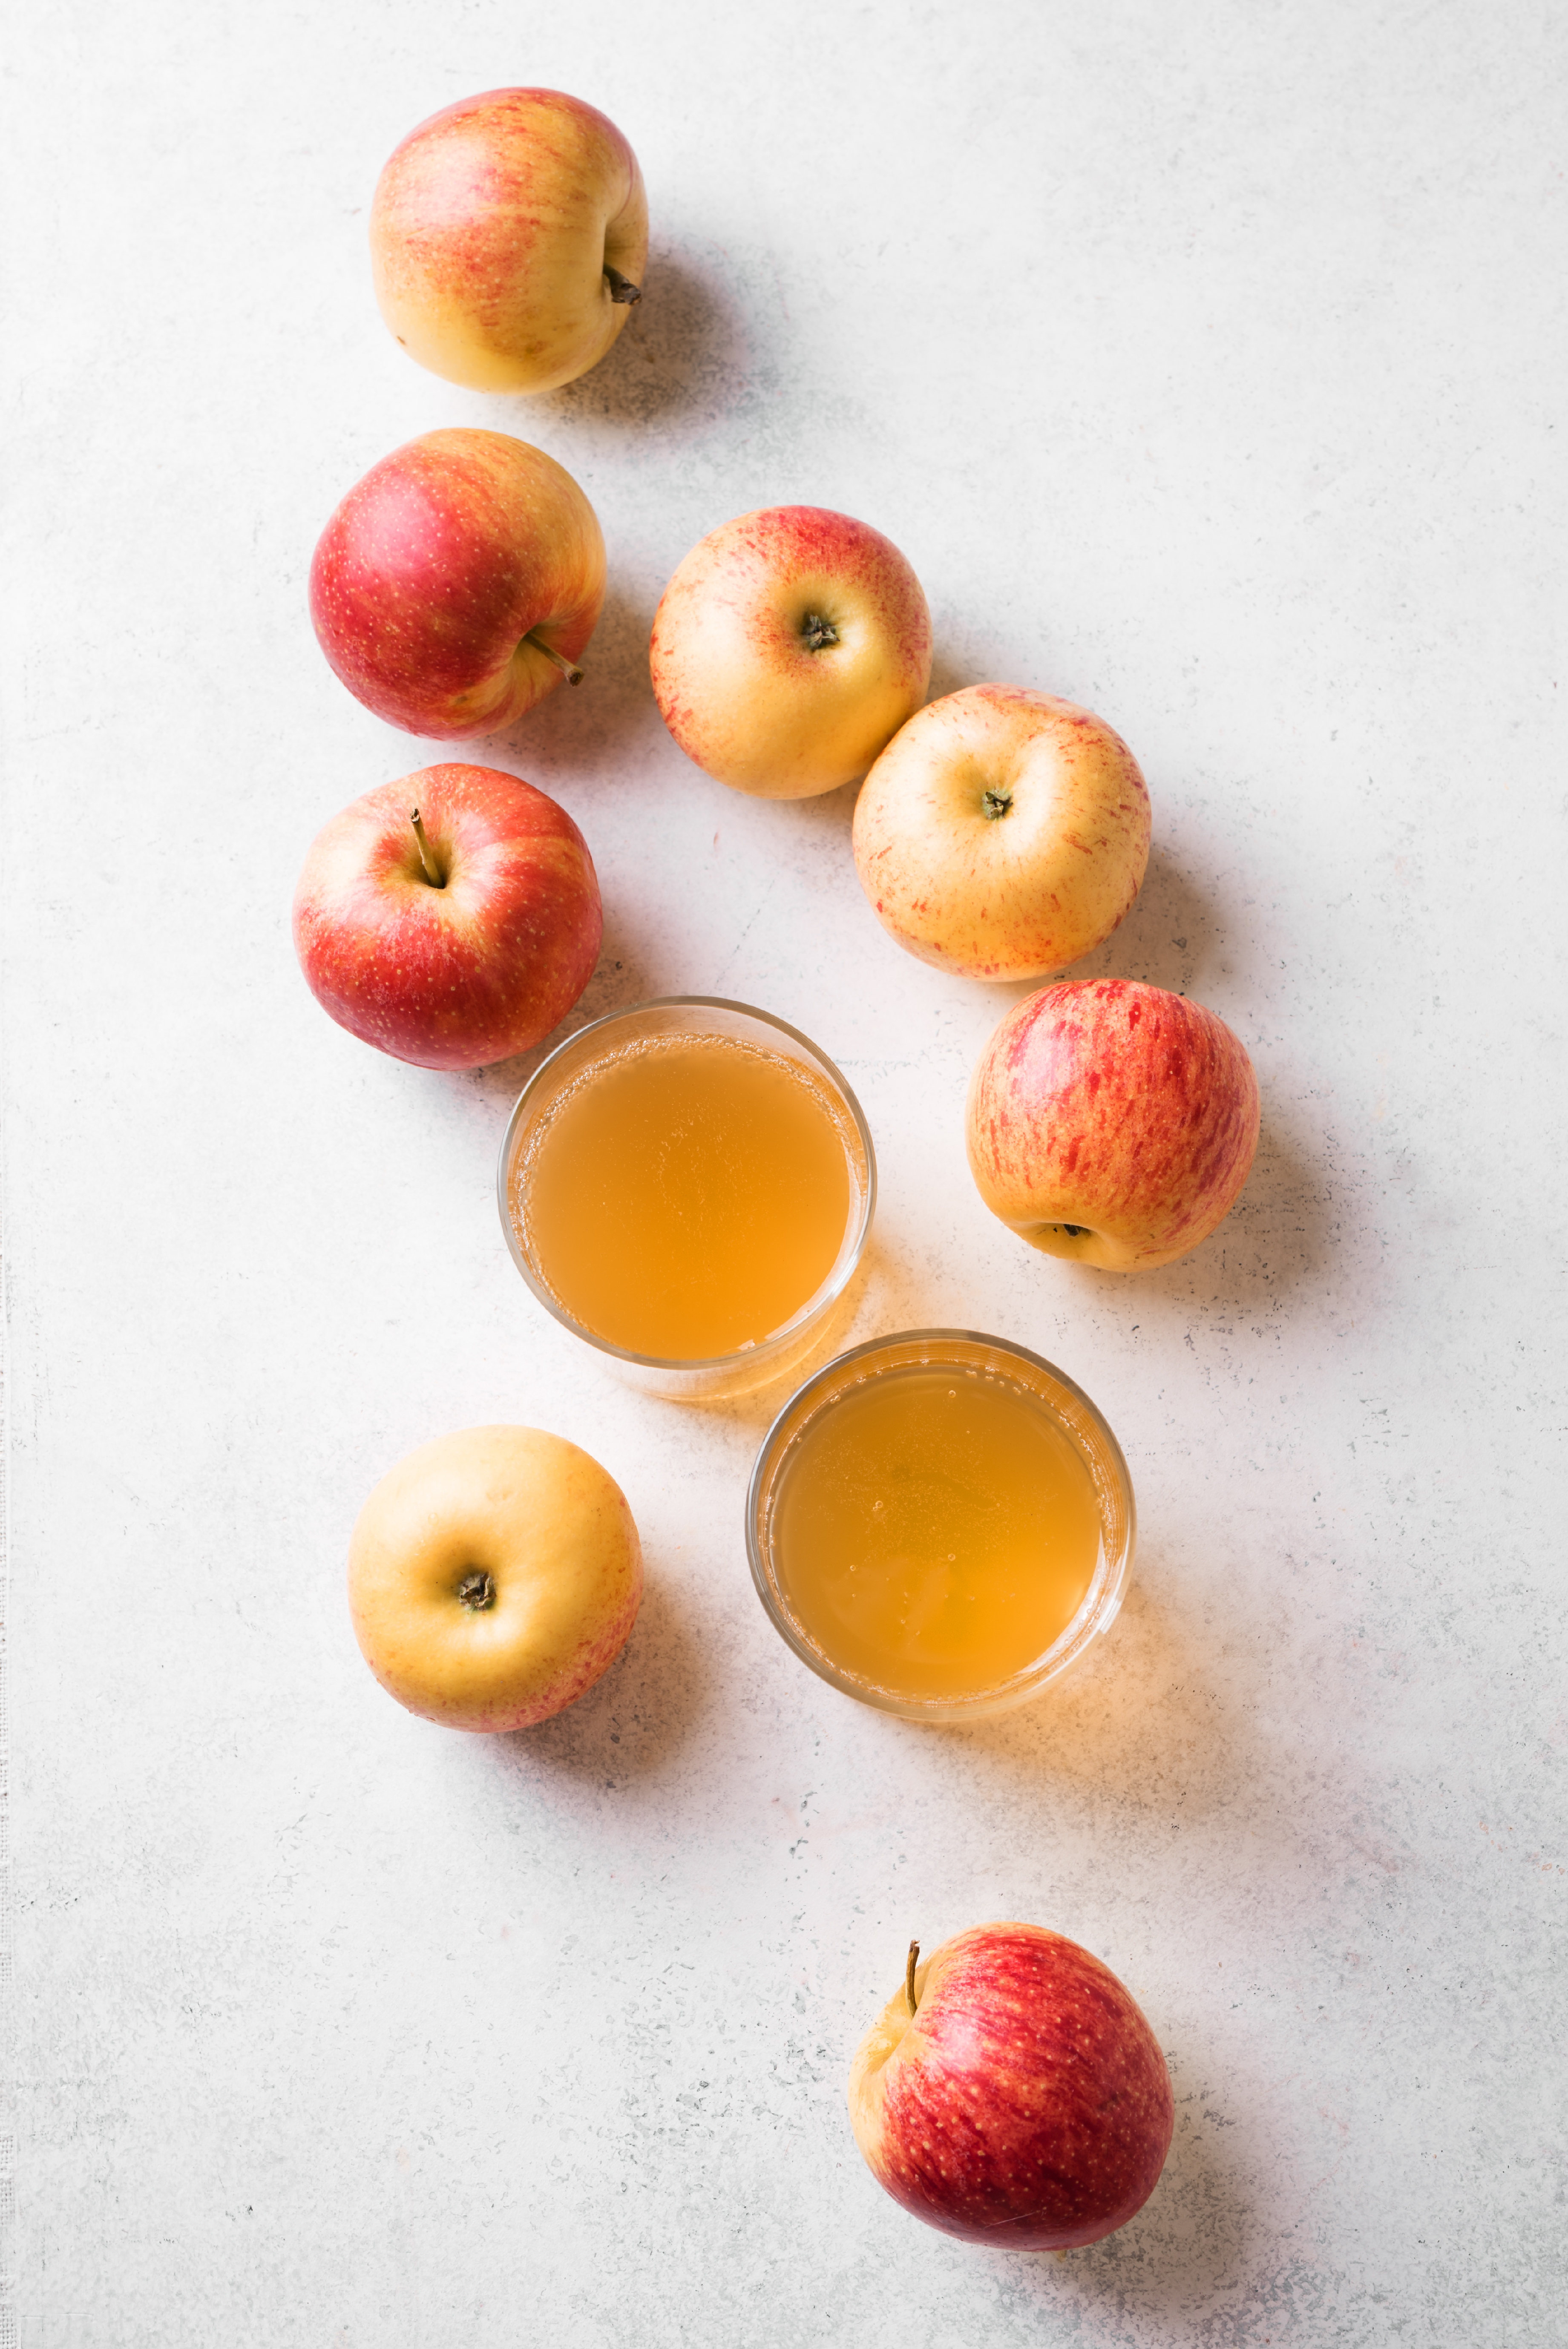 Apple,Cider,Or,Juice,Drink,And,Apples,On,White,Background,